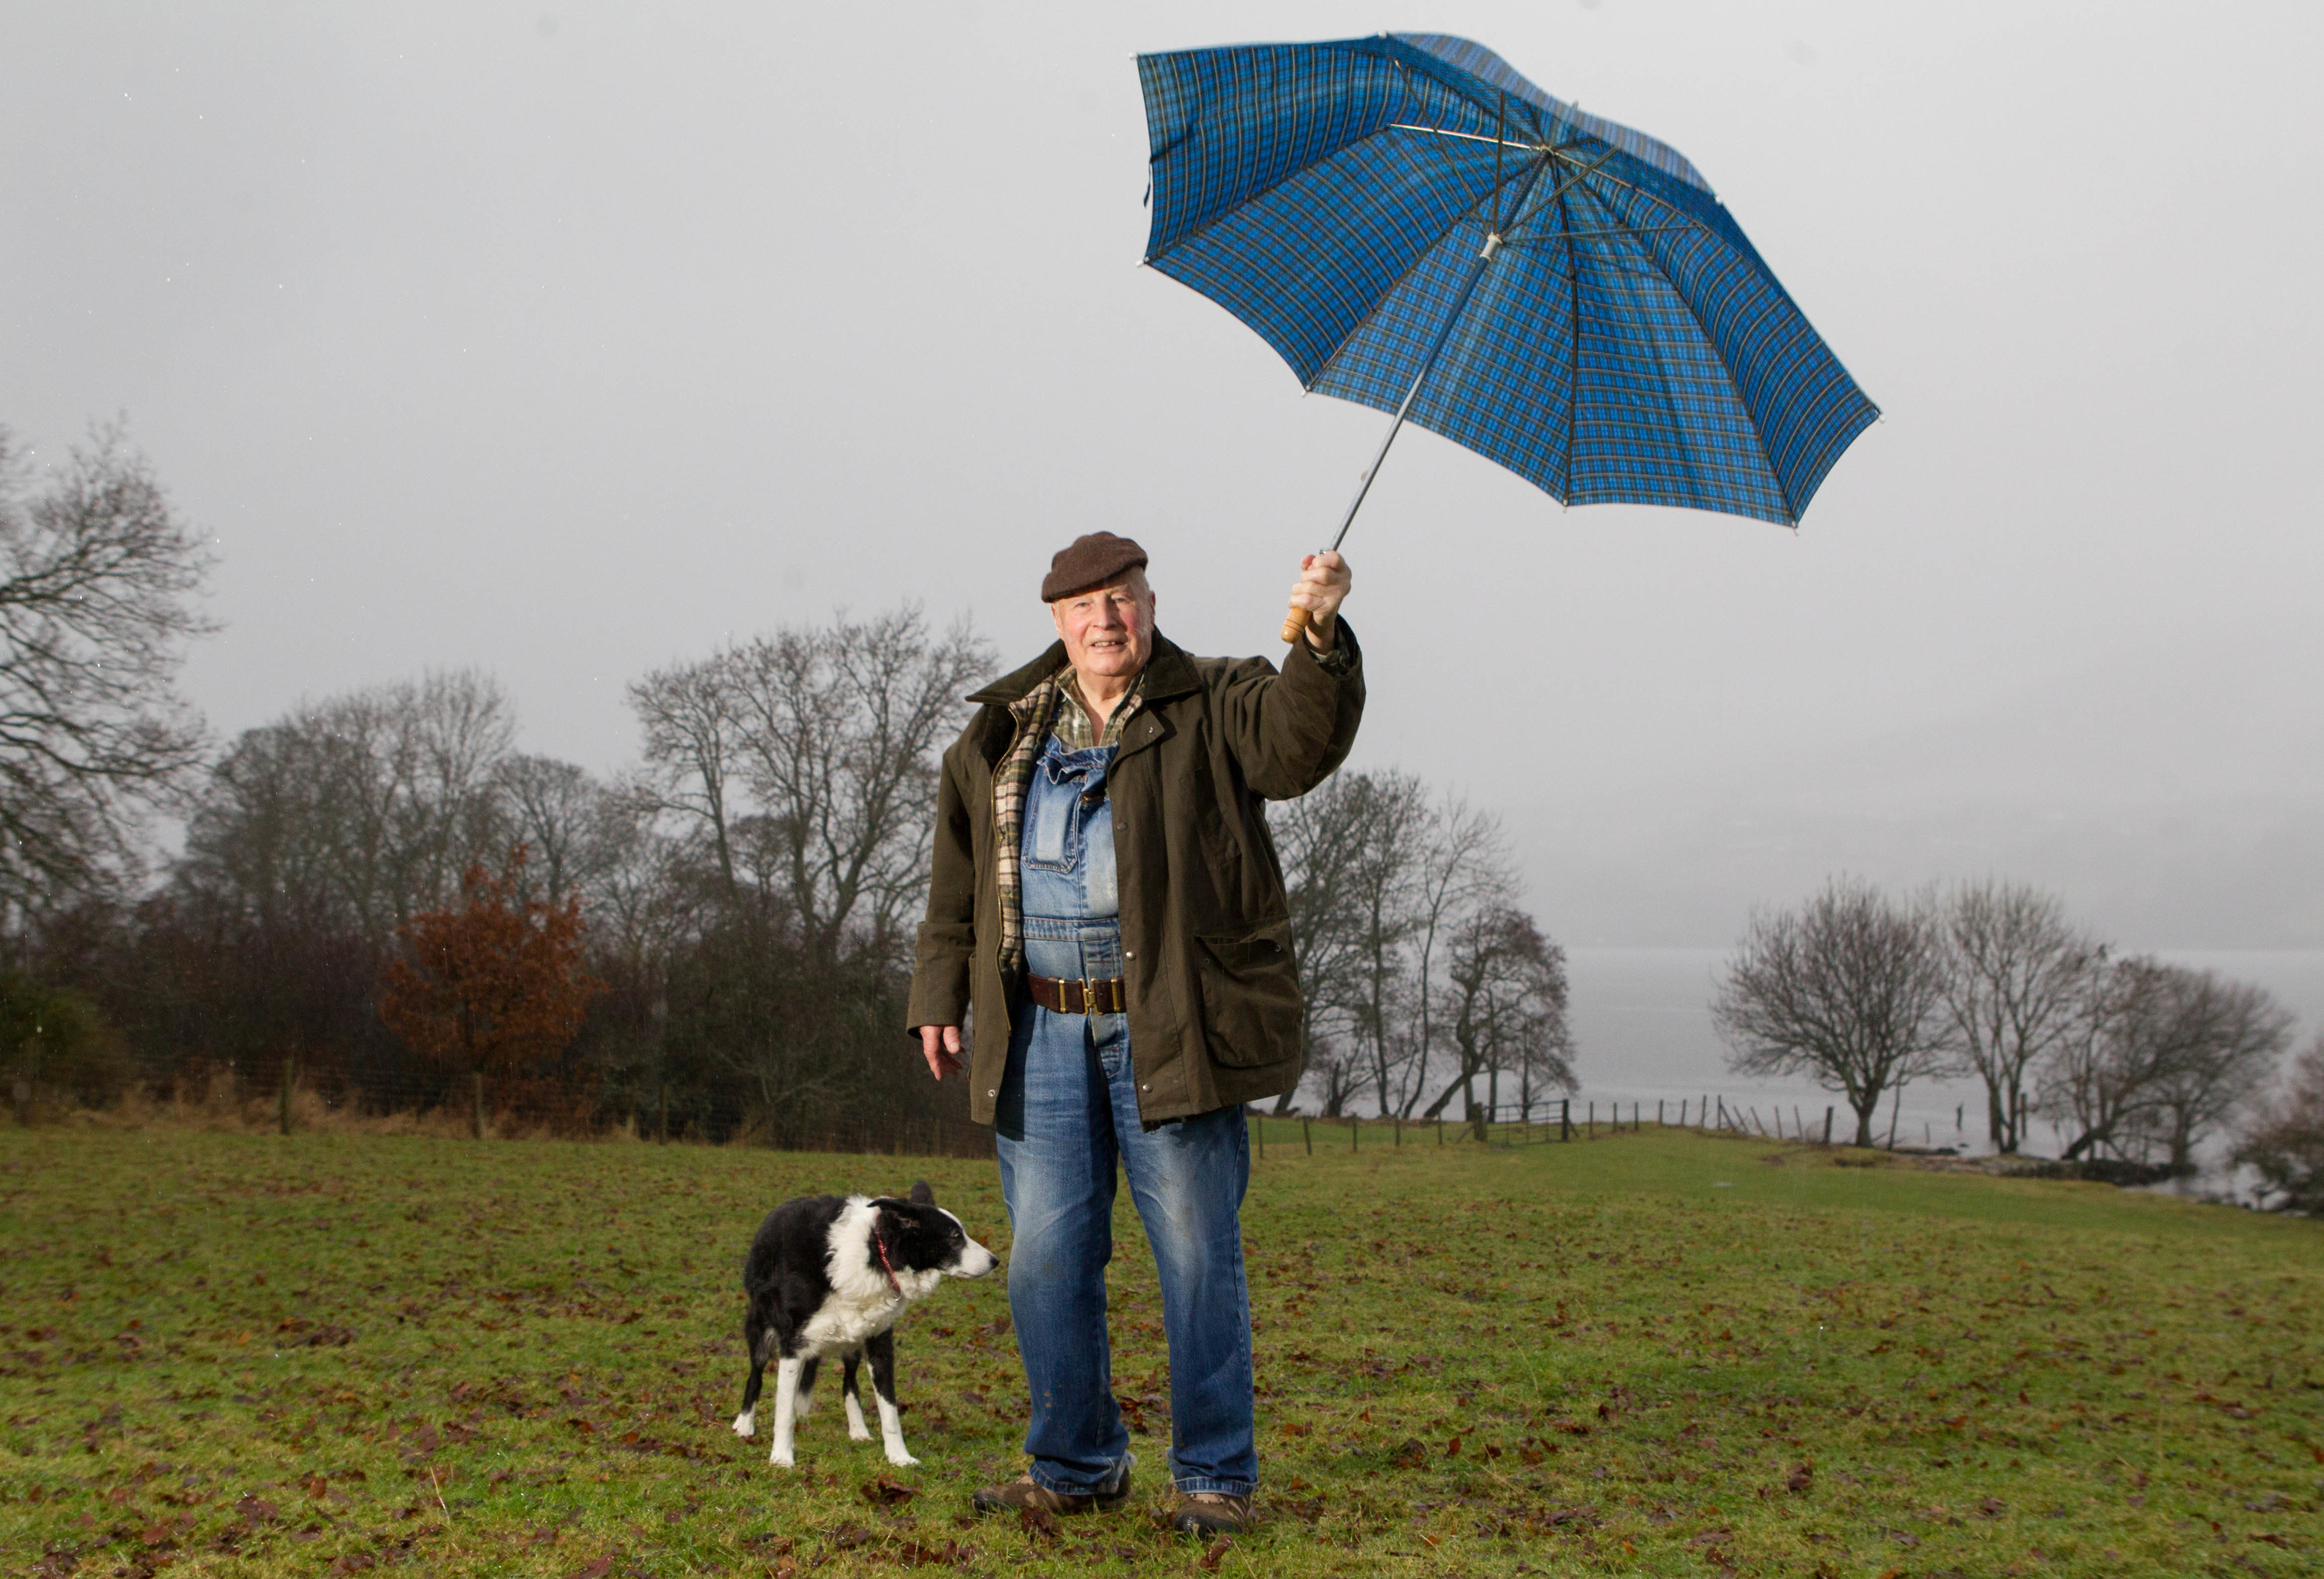 Mervyn Browne collects weather details for The Met office (Chris Austin / DC Thomson)